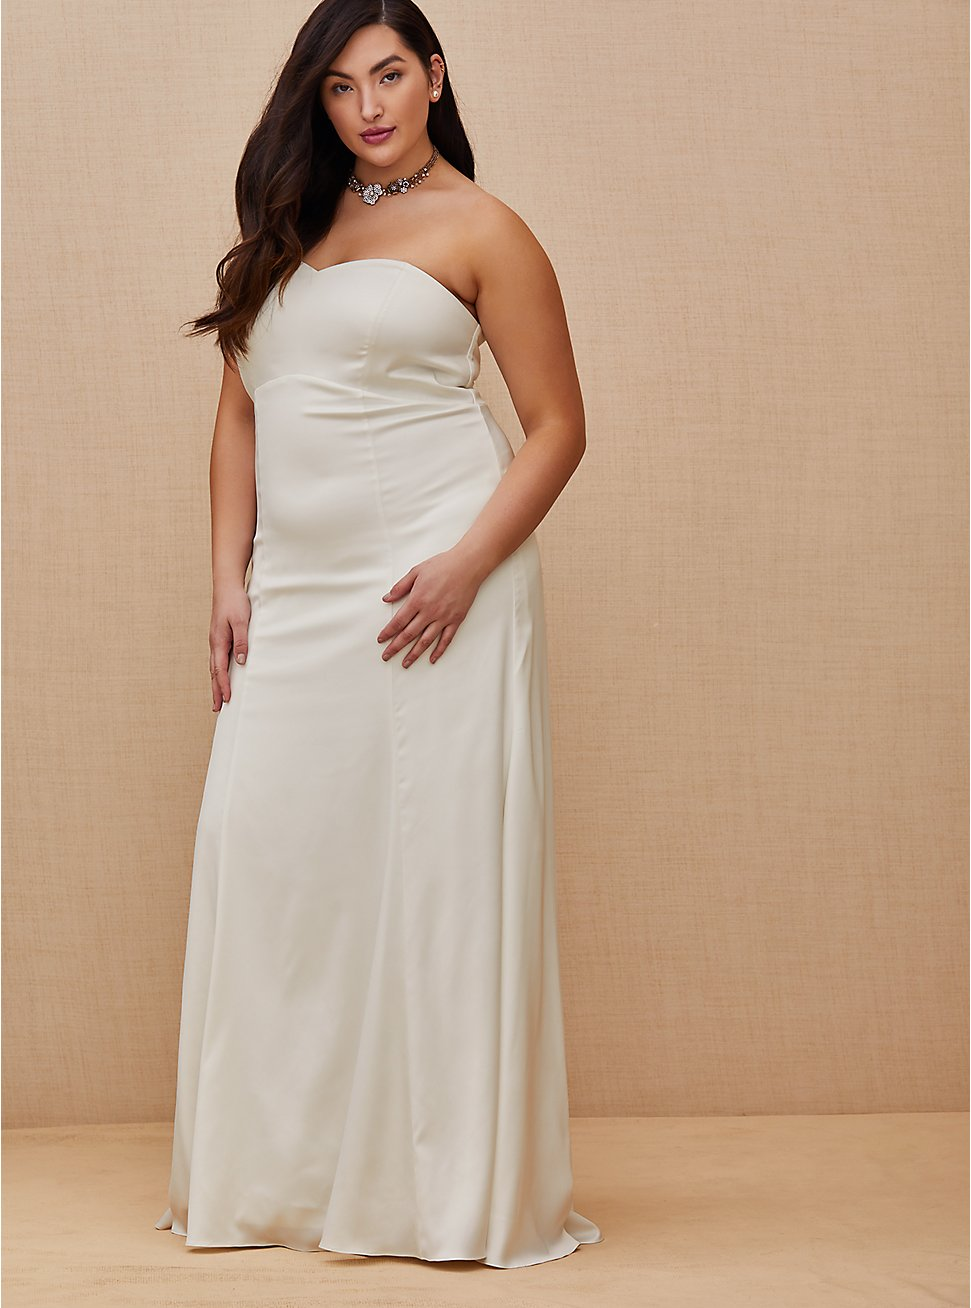 Ivory Satin Strapless Sweetheart Fit & Flare Wedding Dress, CLOUD DANCER, hi-res